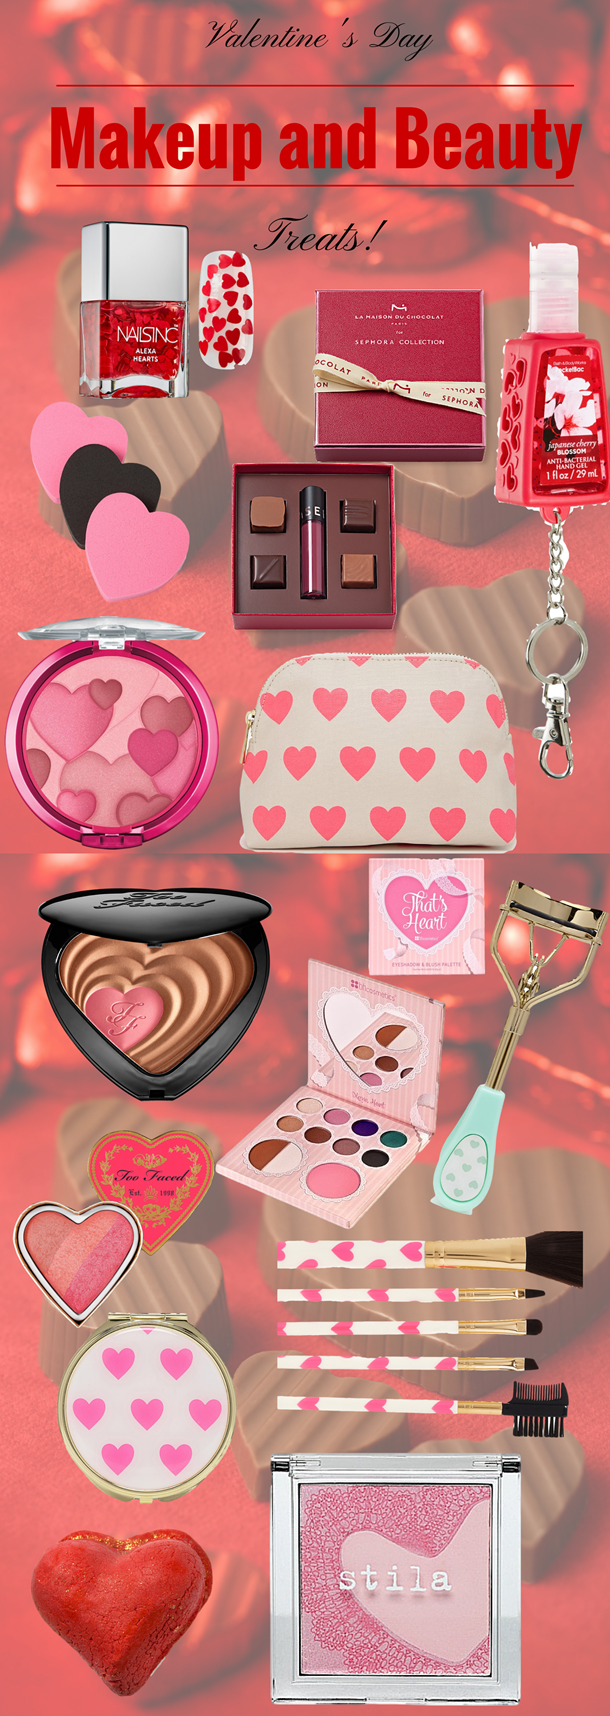 valentine's day makeup and beauty